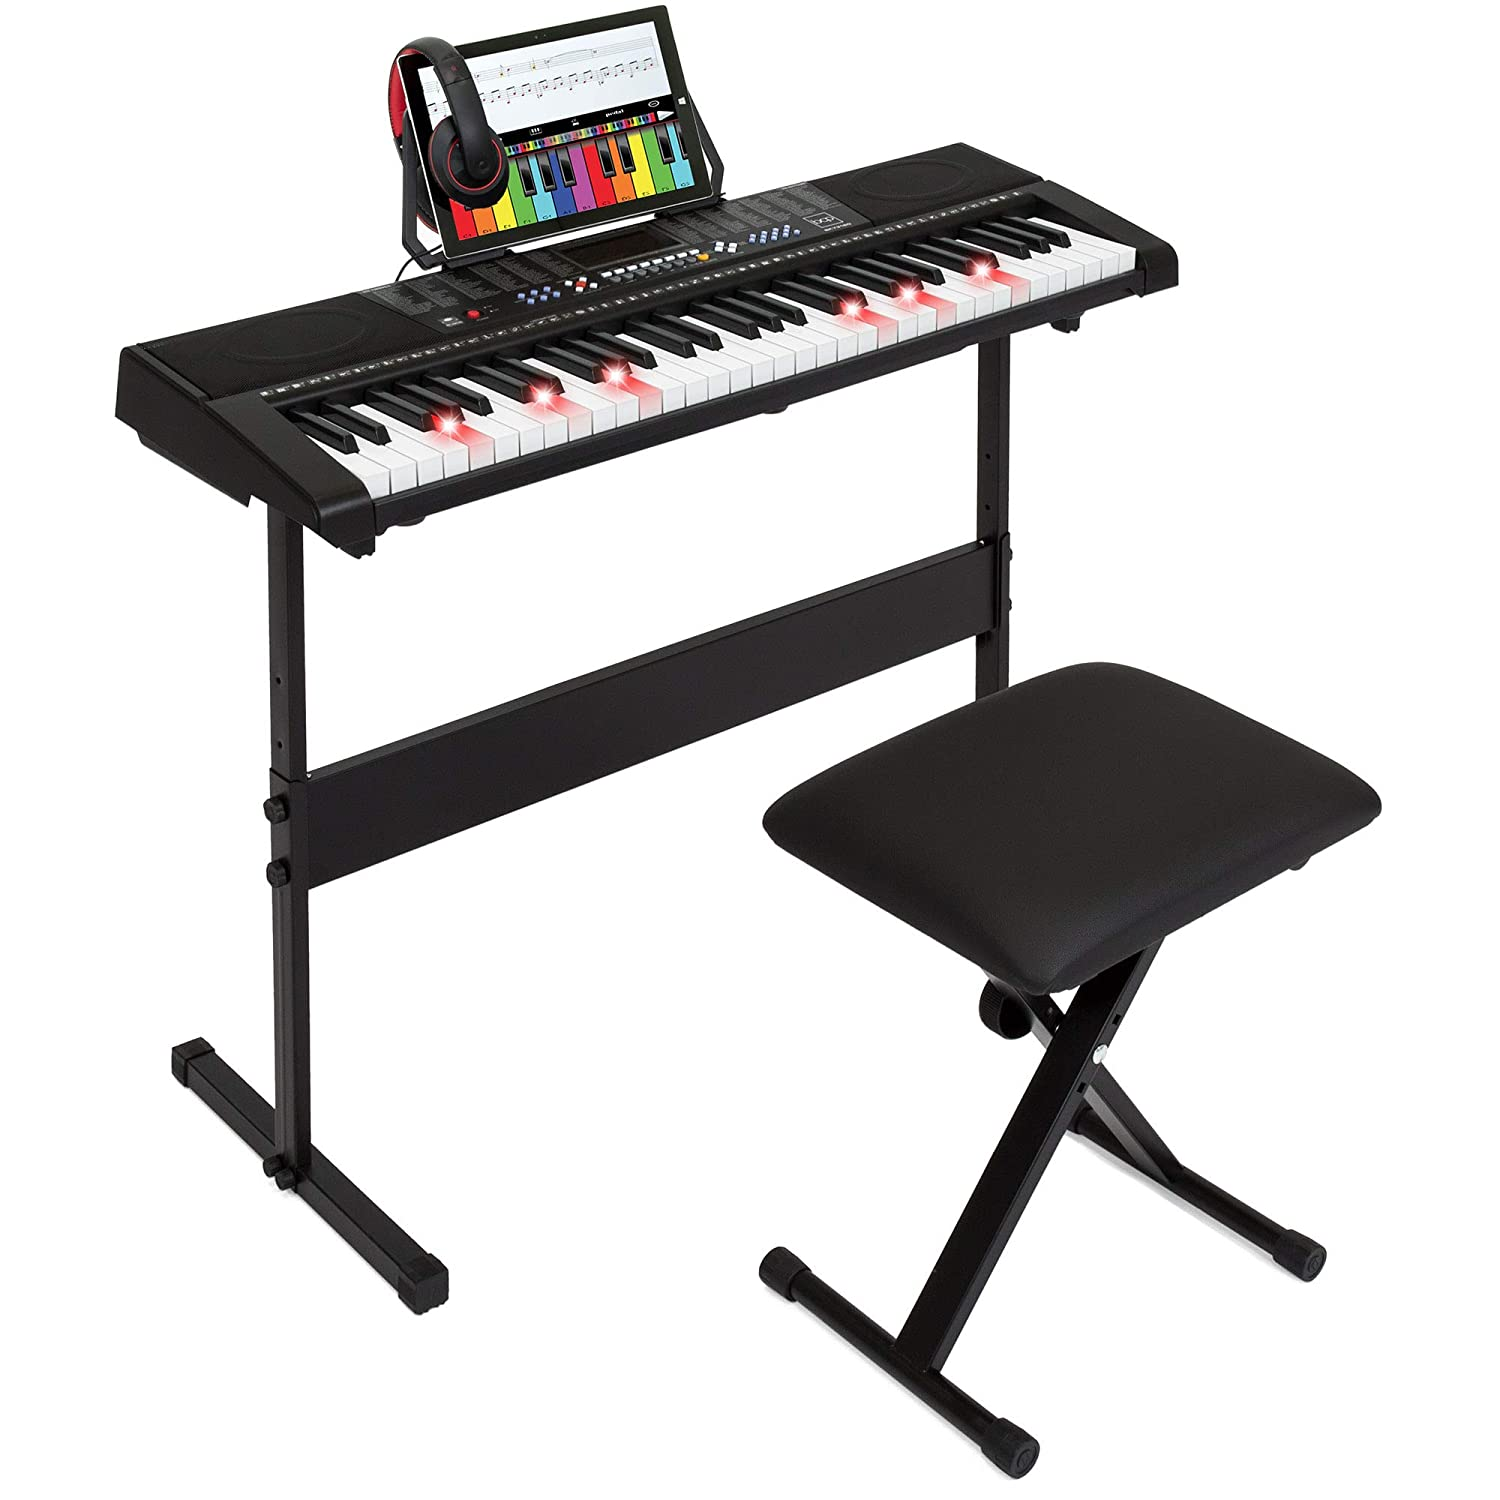 Best Choice Products 61-Key Electronic Keyboard w/Light-Up Keys, 3 Teaching Modes, H-Stand, Stool, Headphones - Black 4334320089